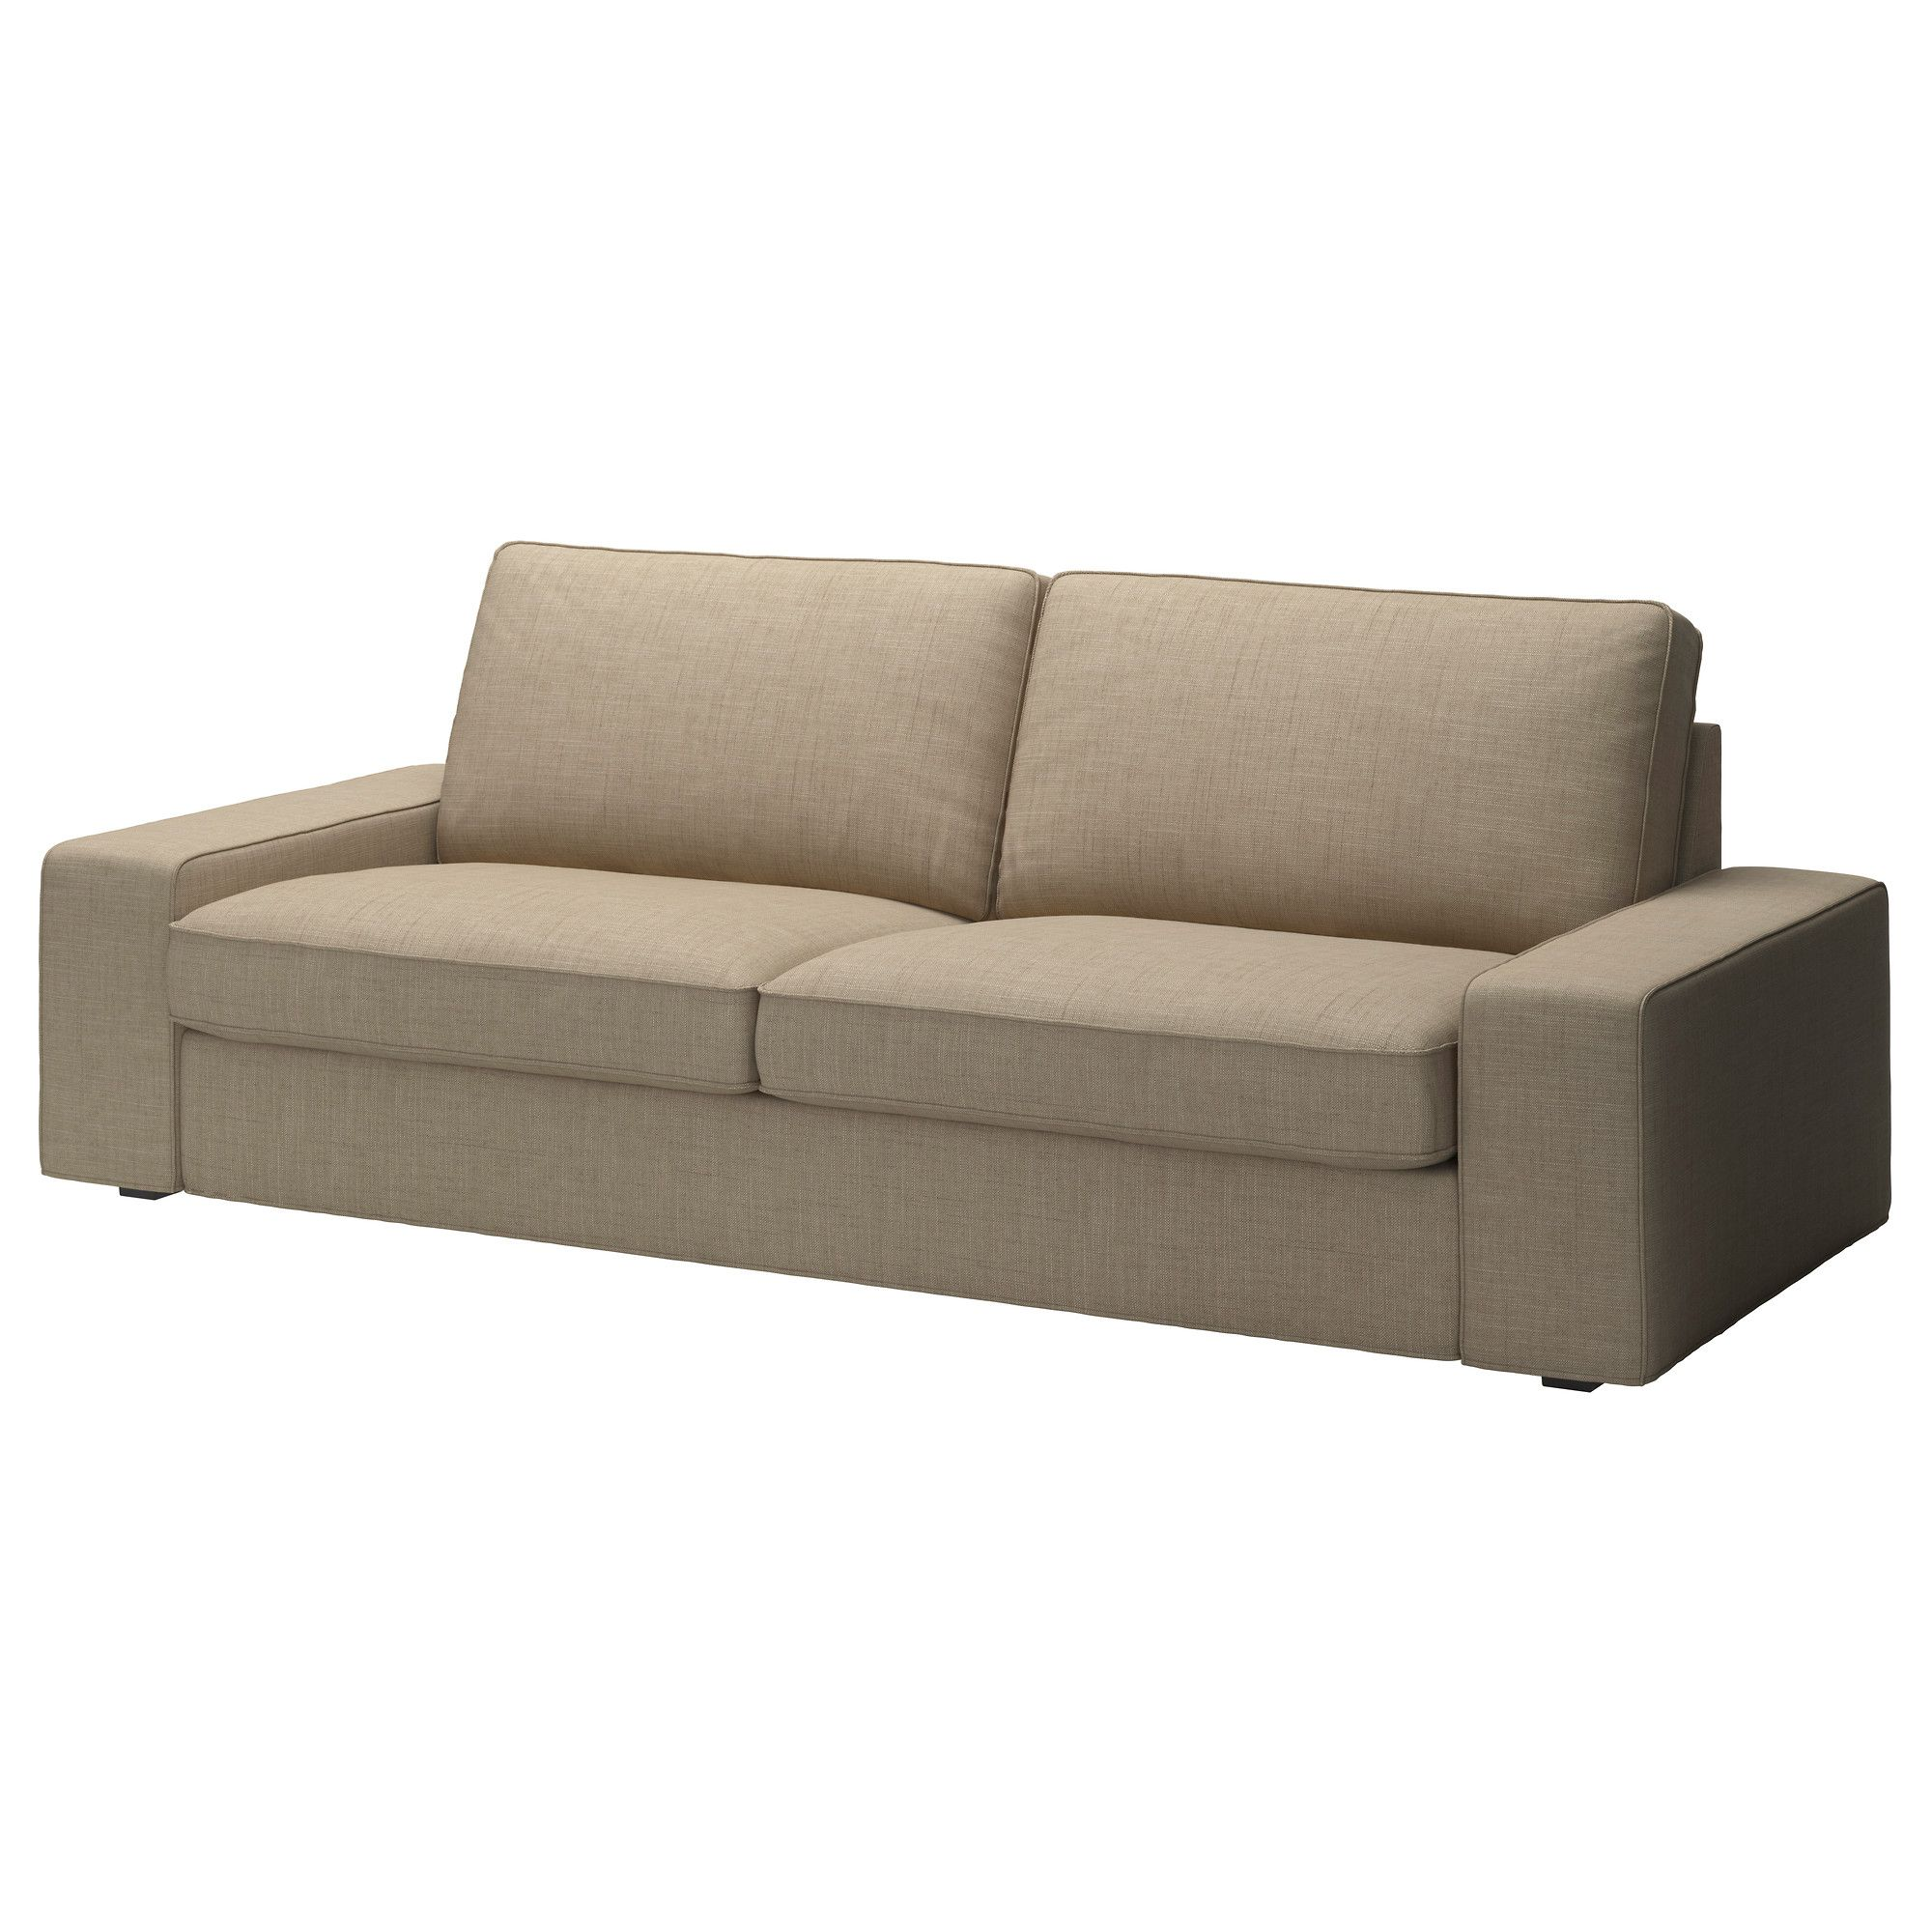 Bettsofa Kivik Kivik Sofa Isunda Beige Ikea Family Room Redo Sofa Living